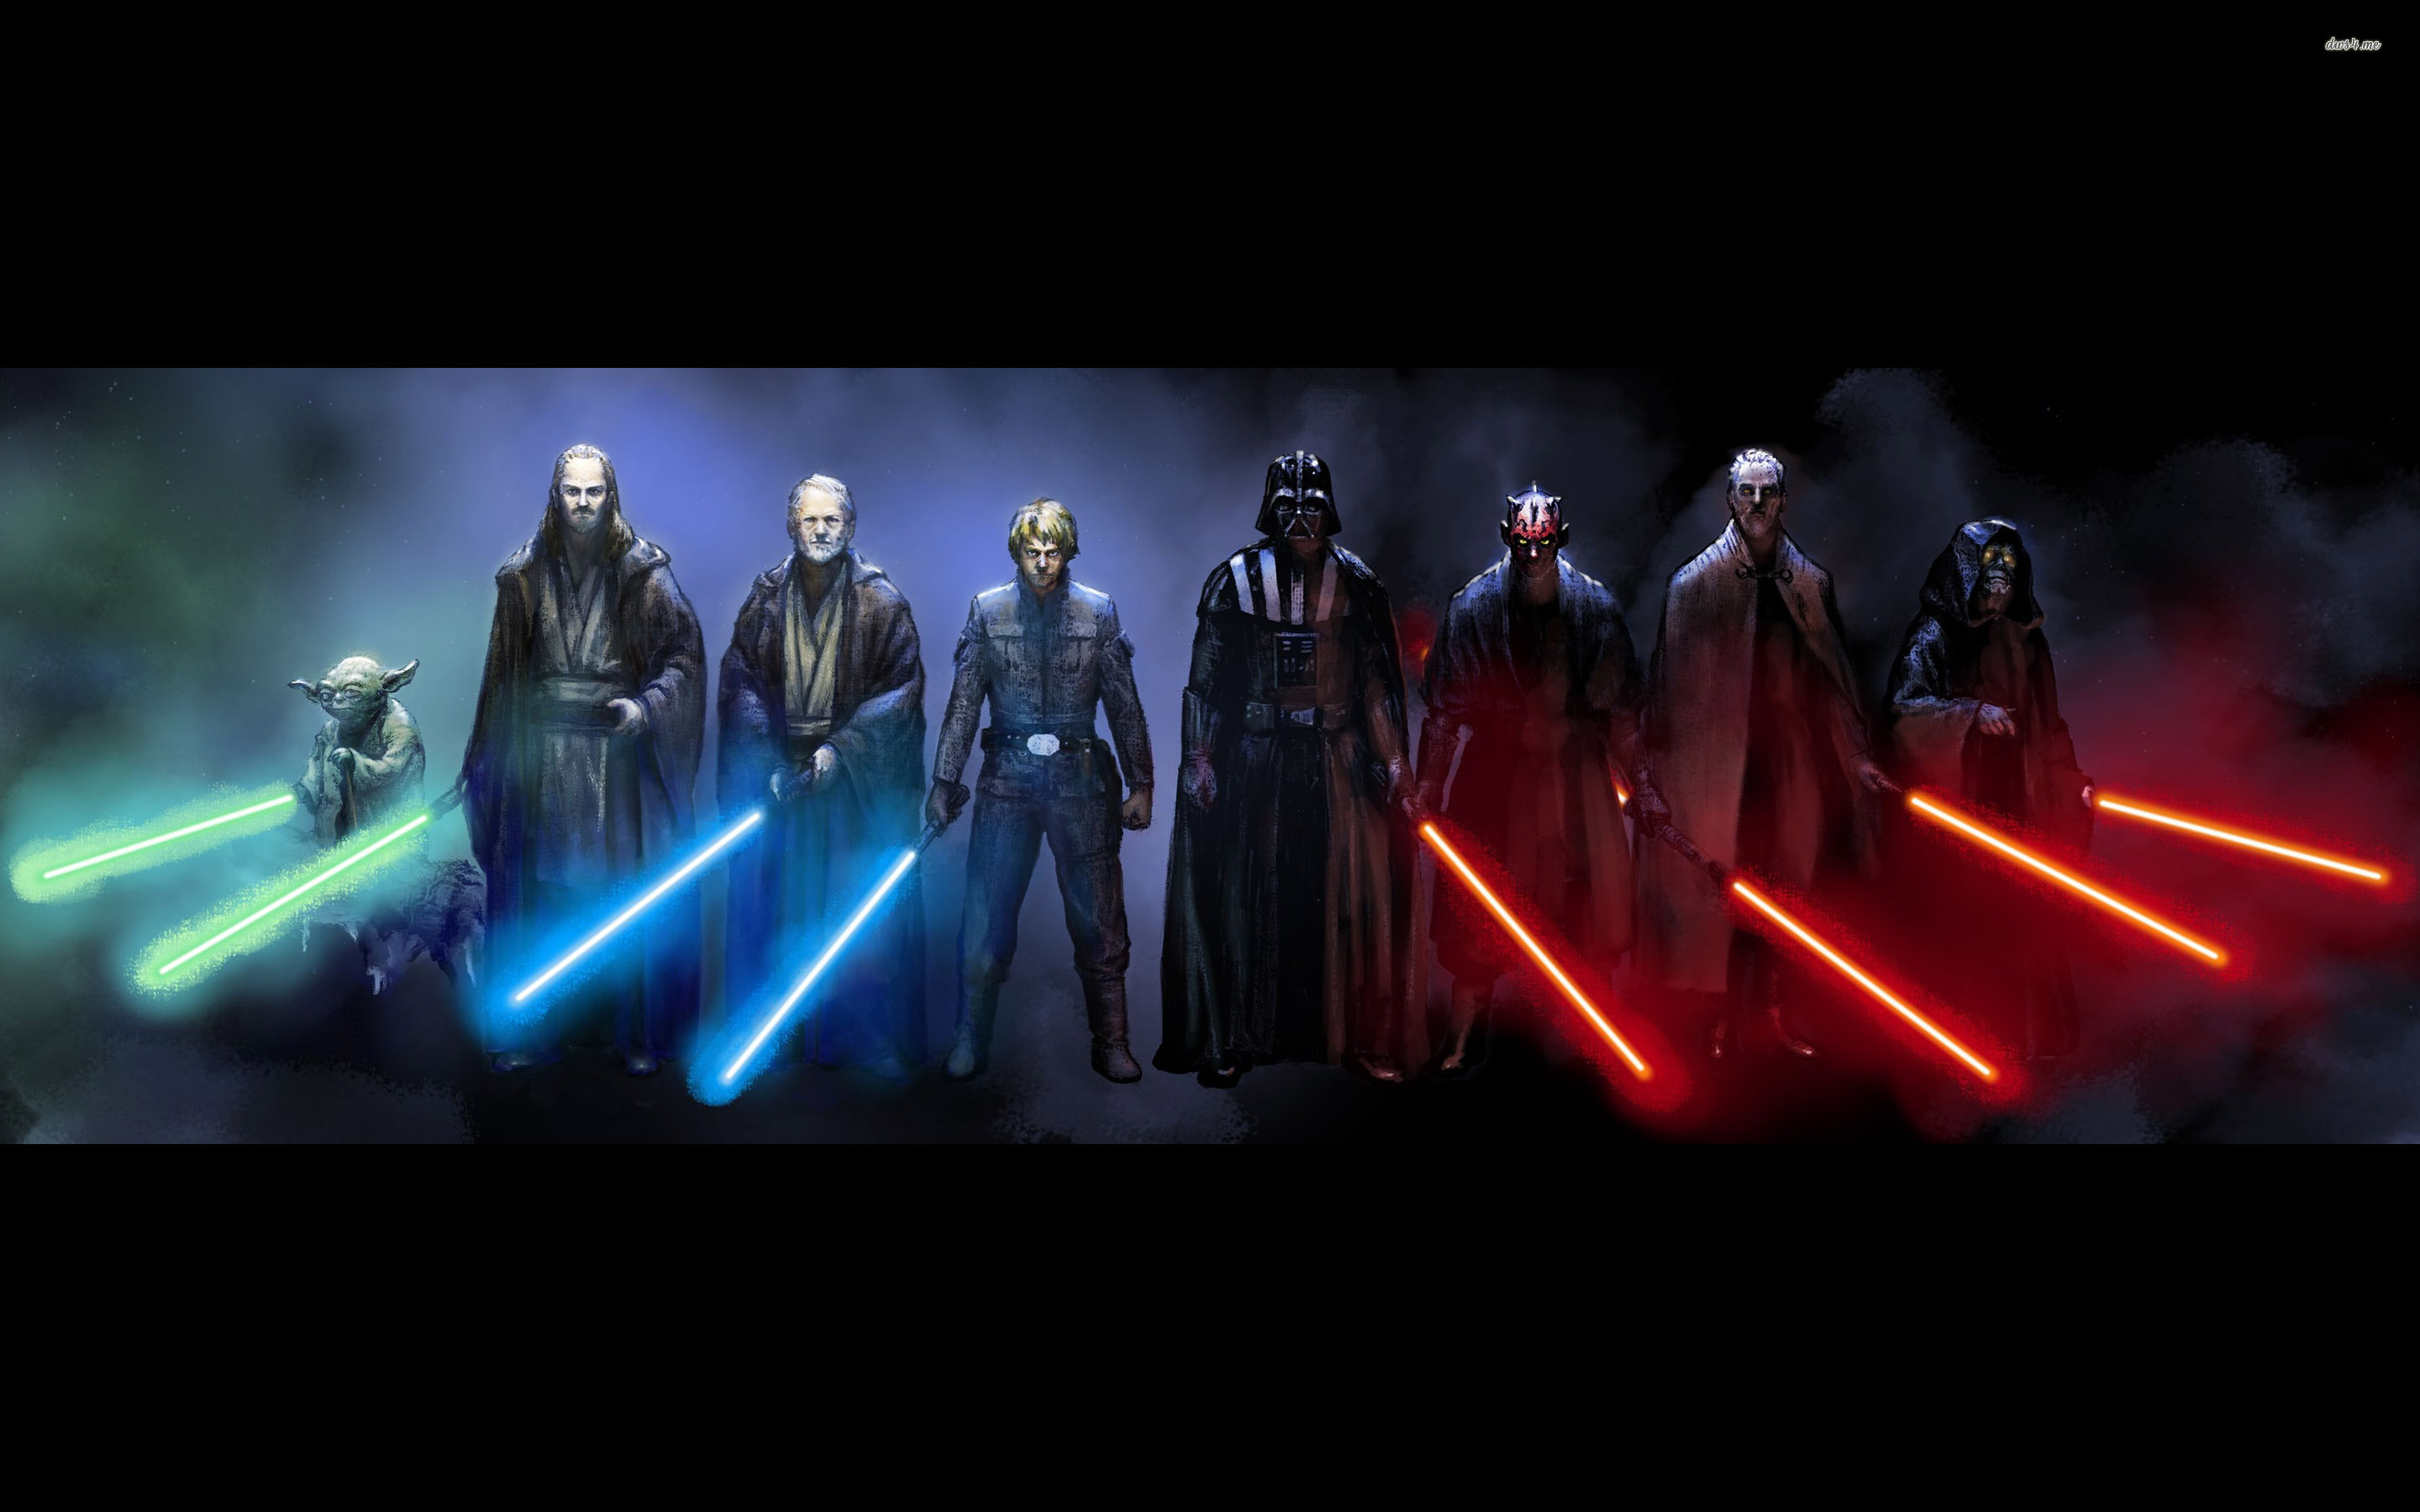 Star Wars wallpaper 2880x1800 43432 2880x1800